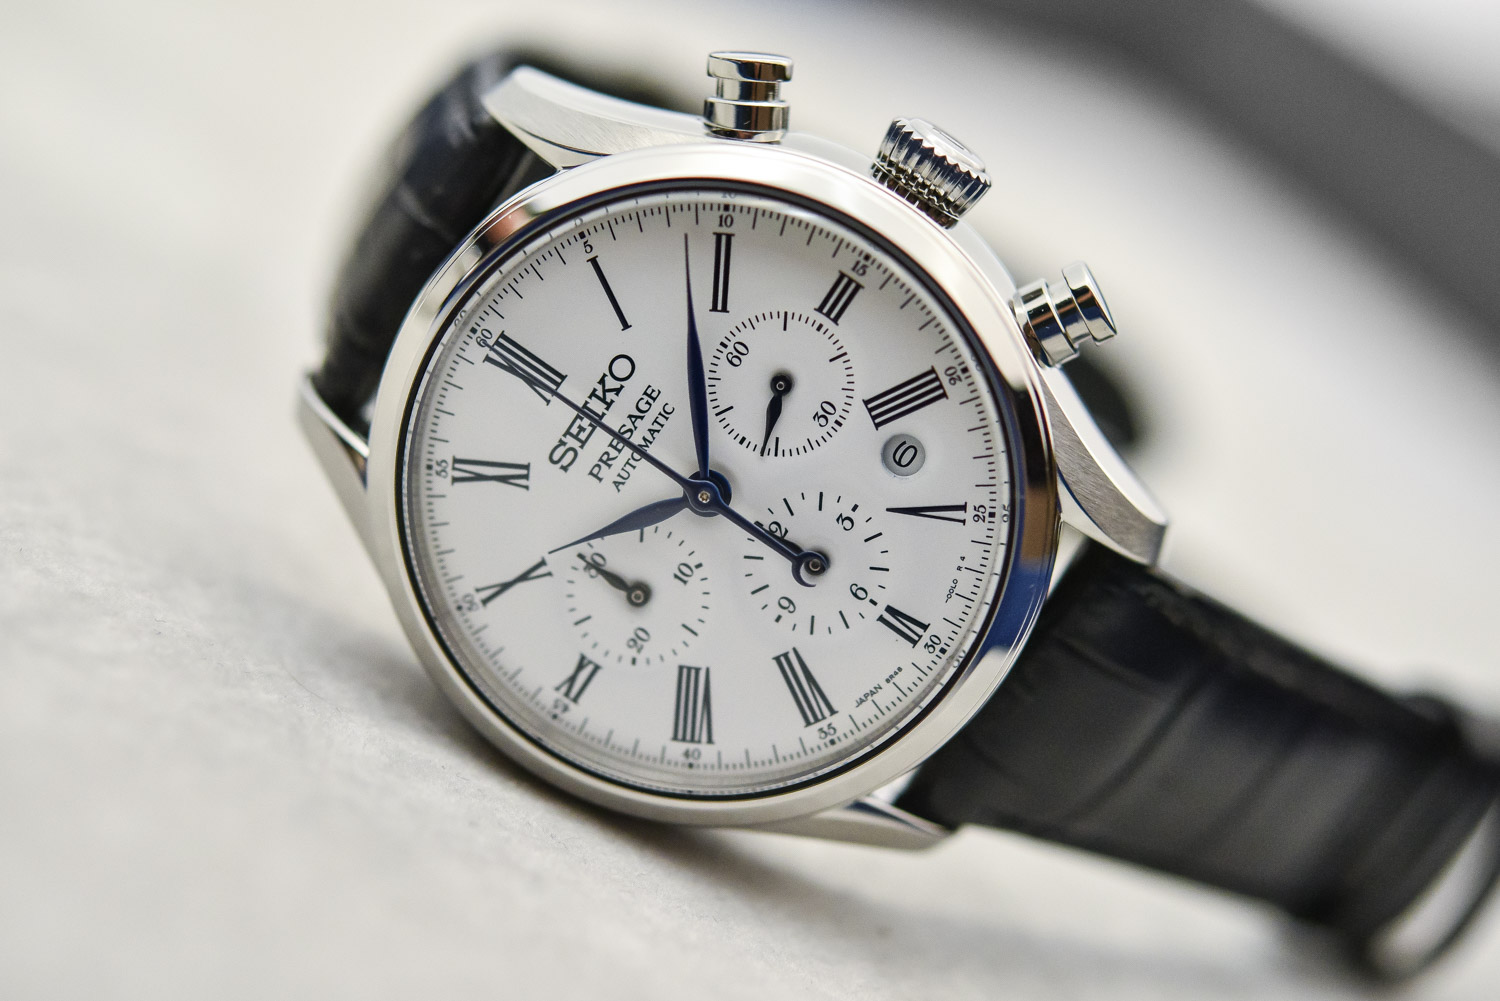 Seiko Presage Enamel Collection Unlimited - Presage Enamel Chronograph SRQ023